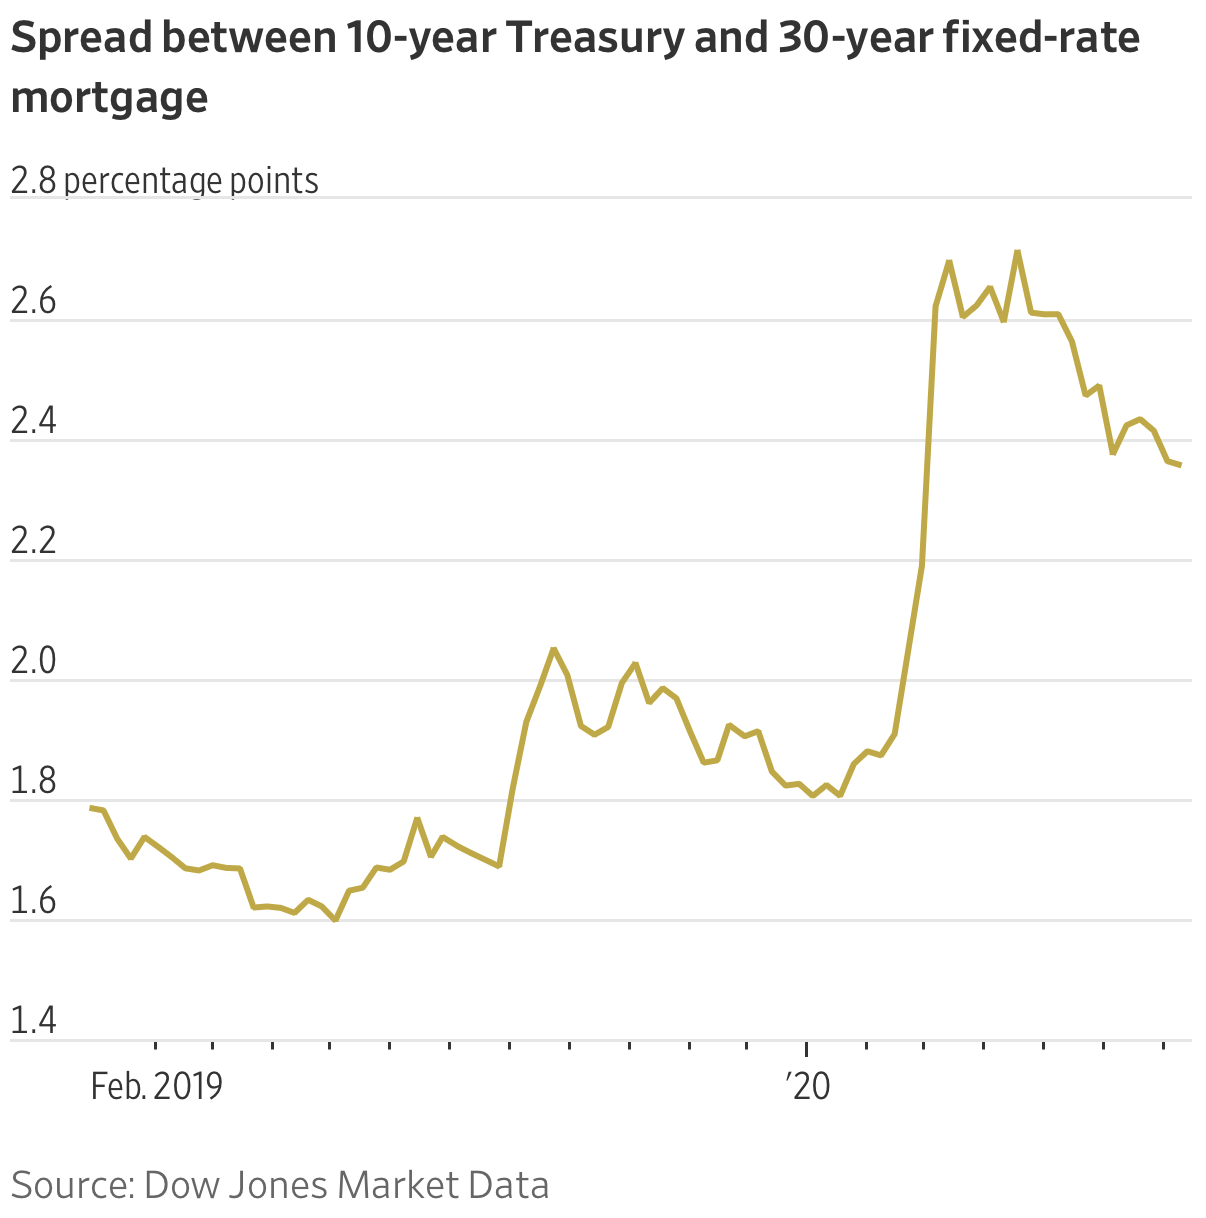 Spread between 10-year Treasury and 30-year fixed-rate mortgage